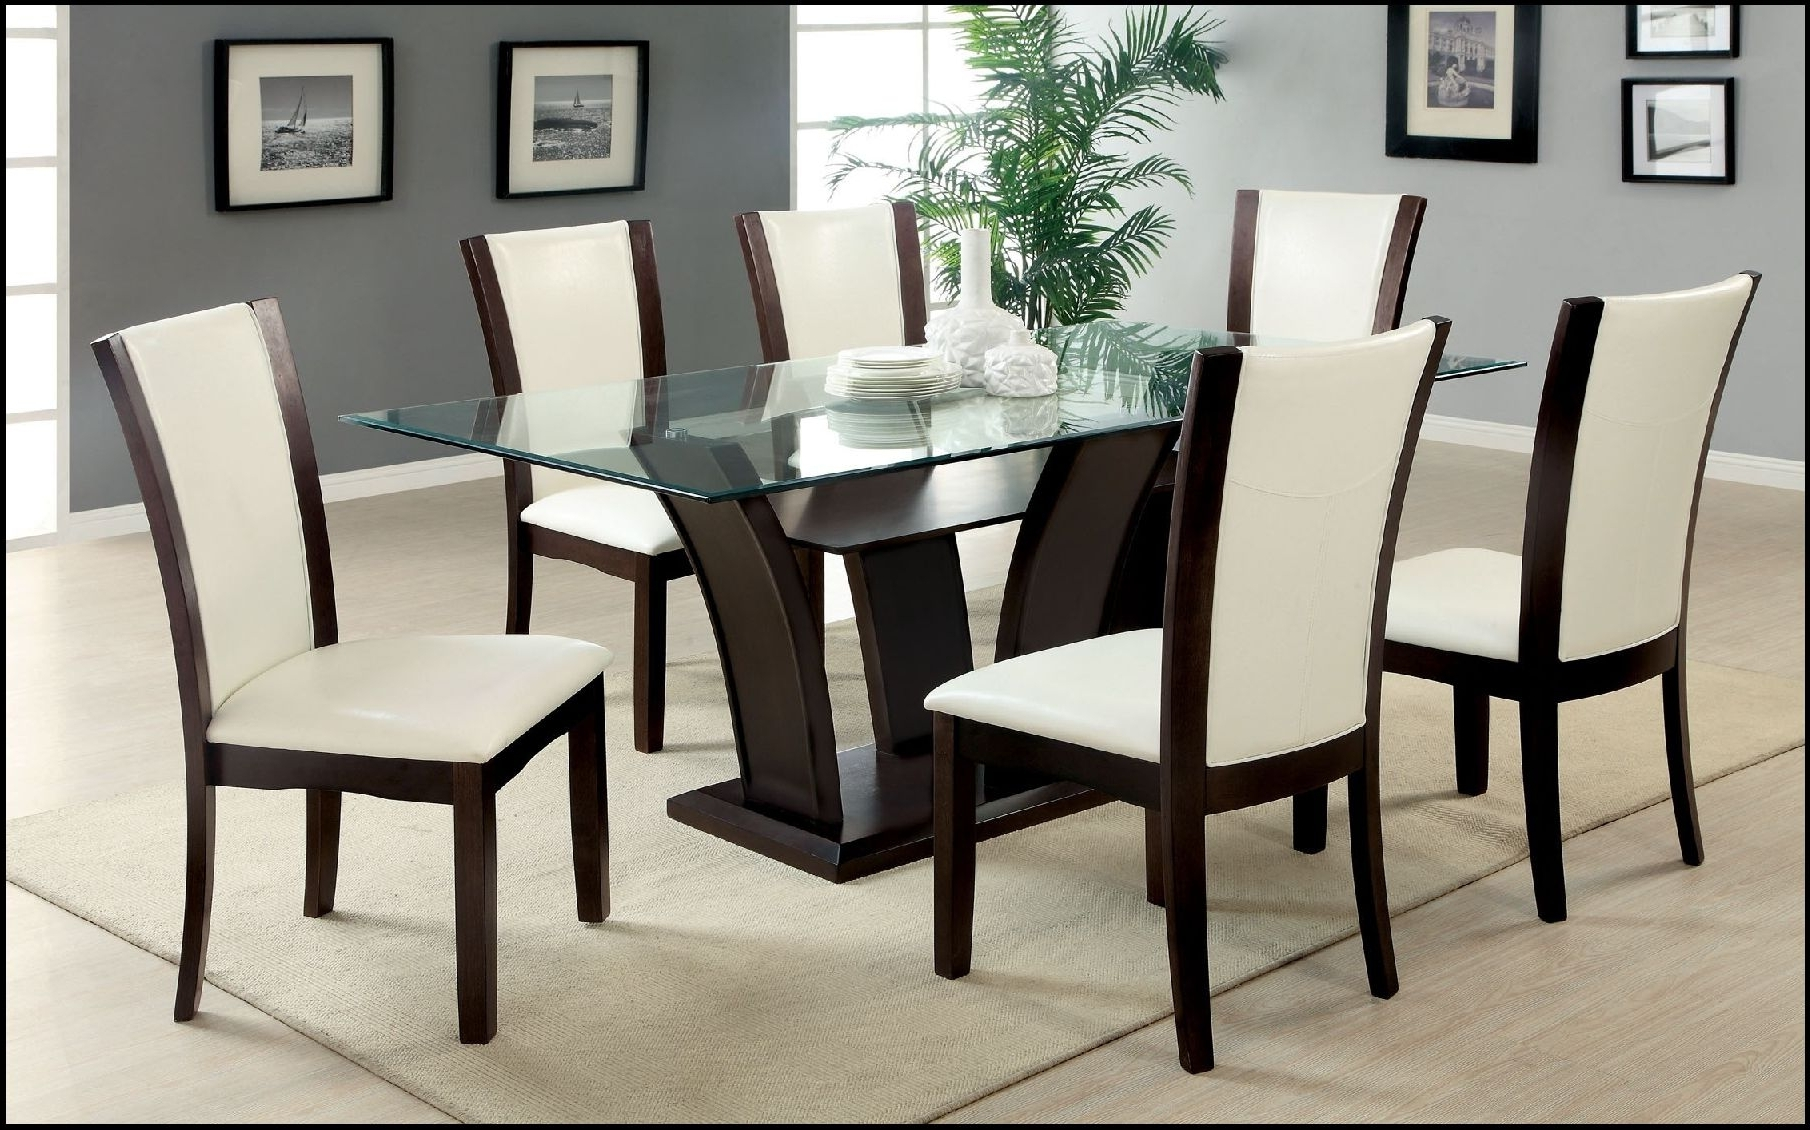 Trendy Dining Table Set 6 Seater Round And Chairs Six Kitchen 4 Stunning Throughout Dining Tables And 6 Chairs (View 4 of 25)